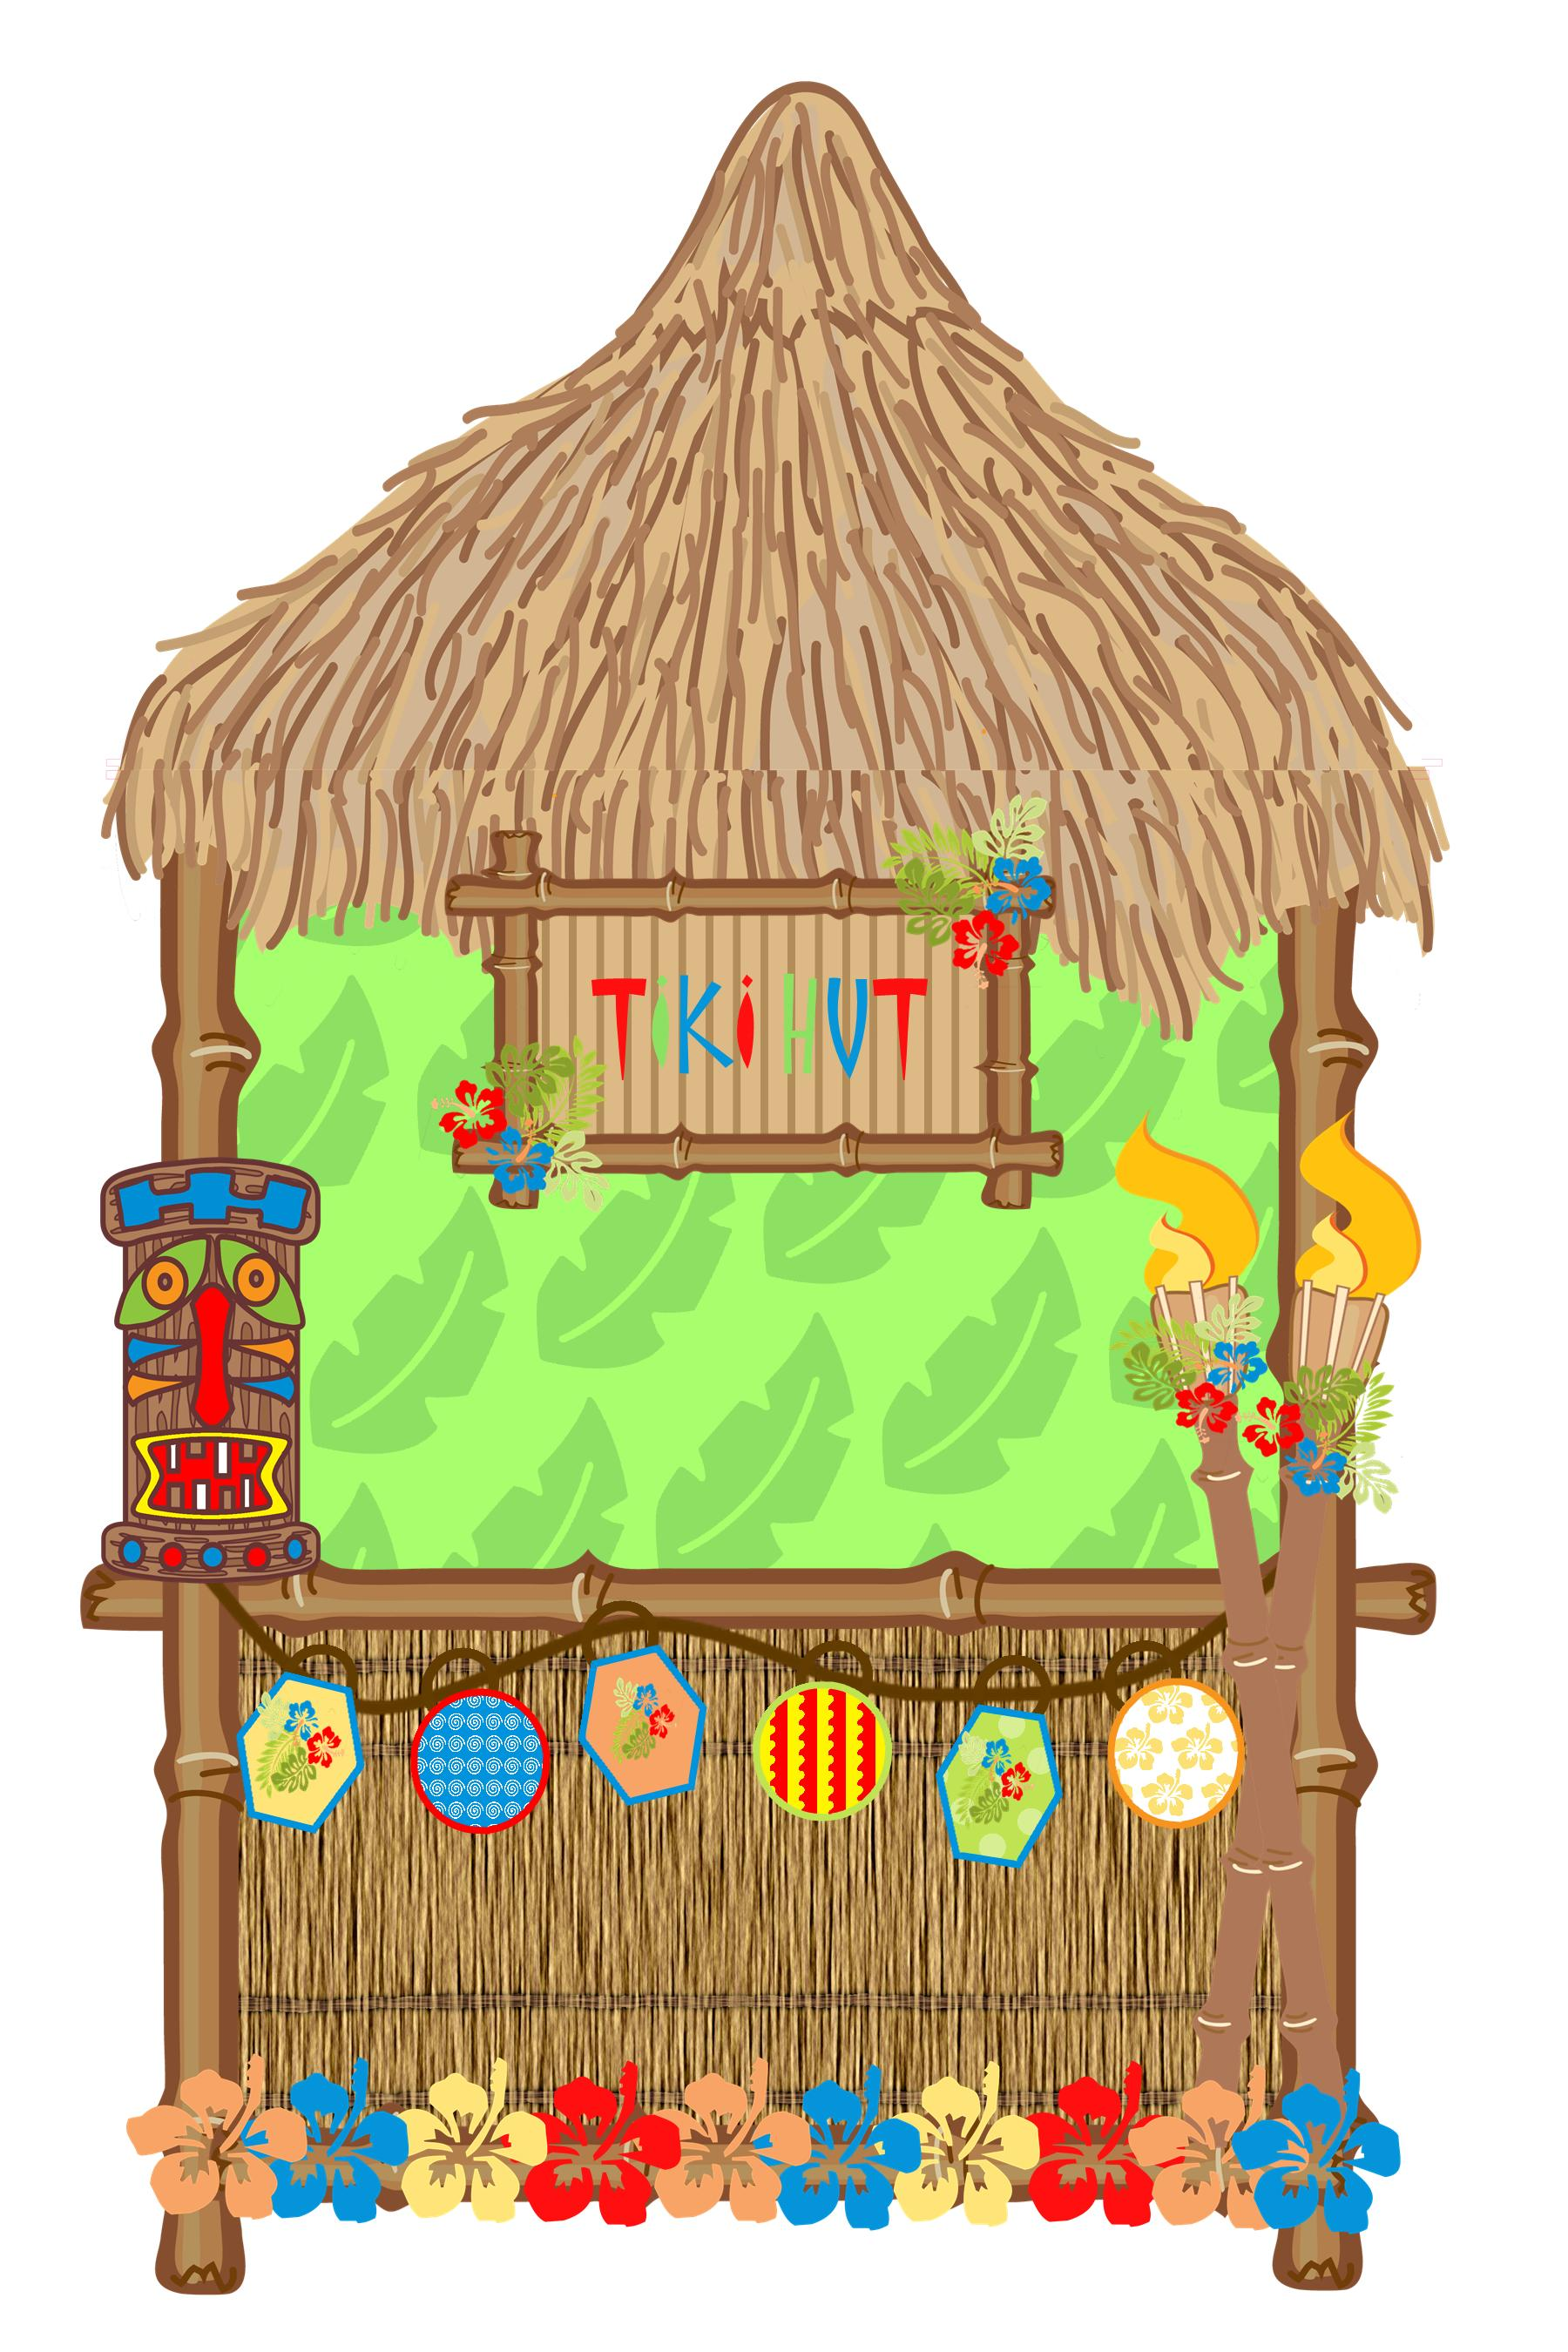 Tiki Hut Clipart Group with 69+ items.